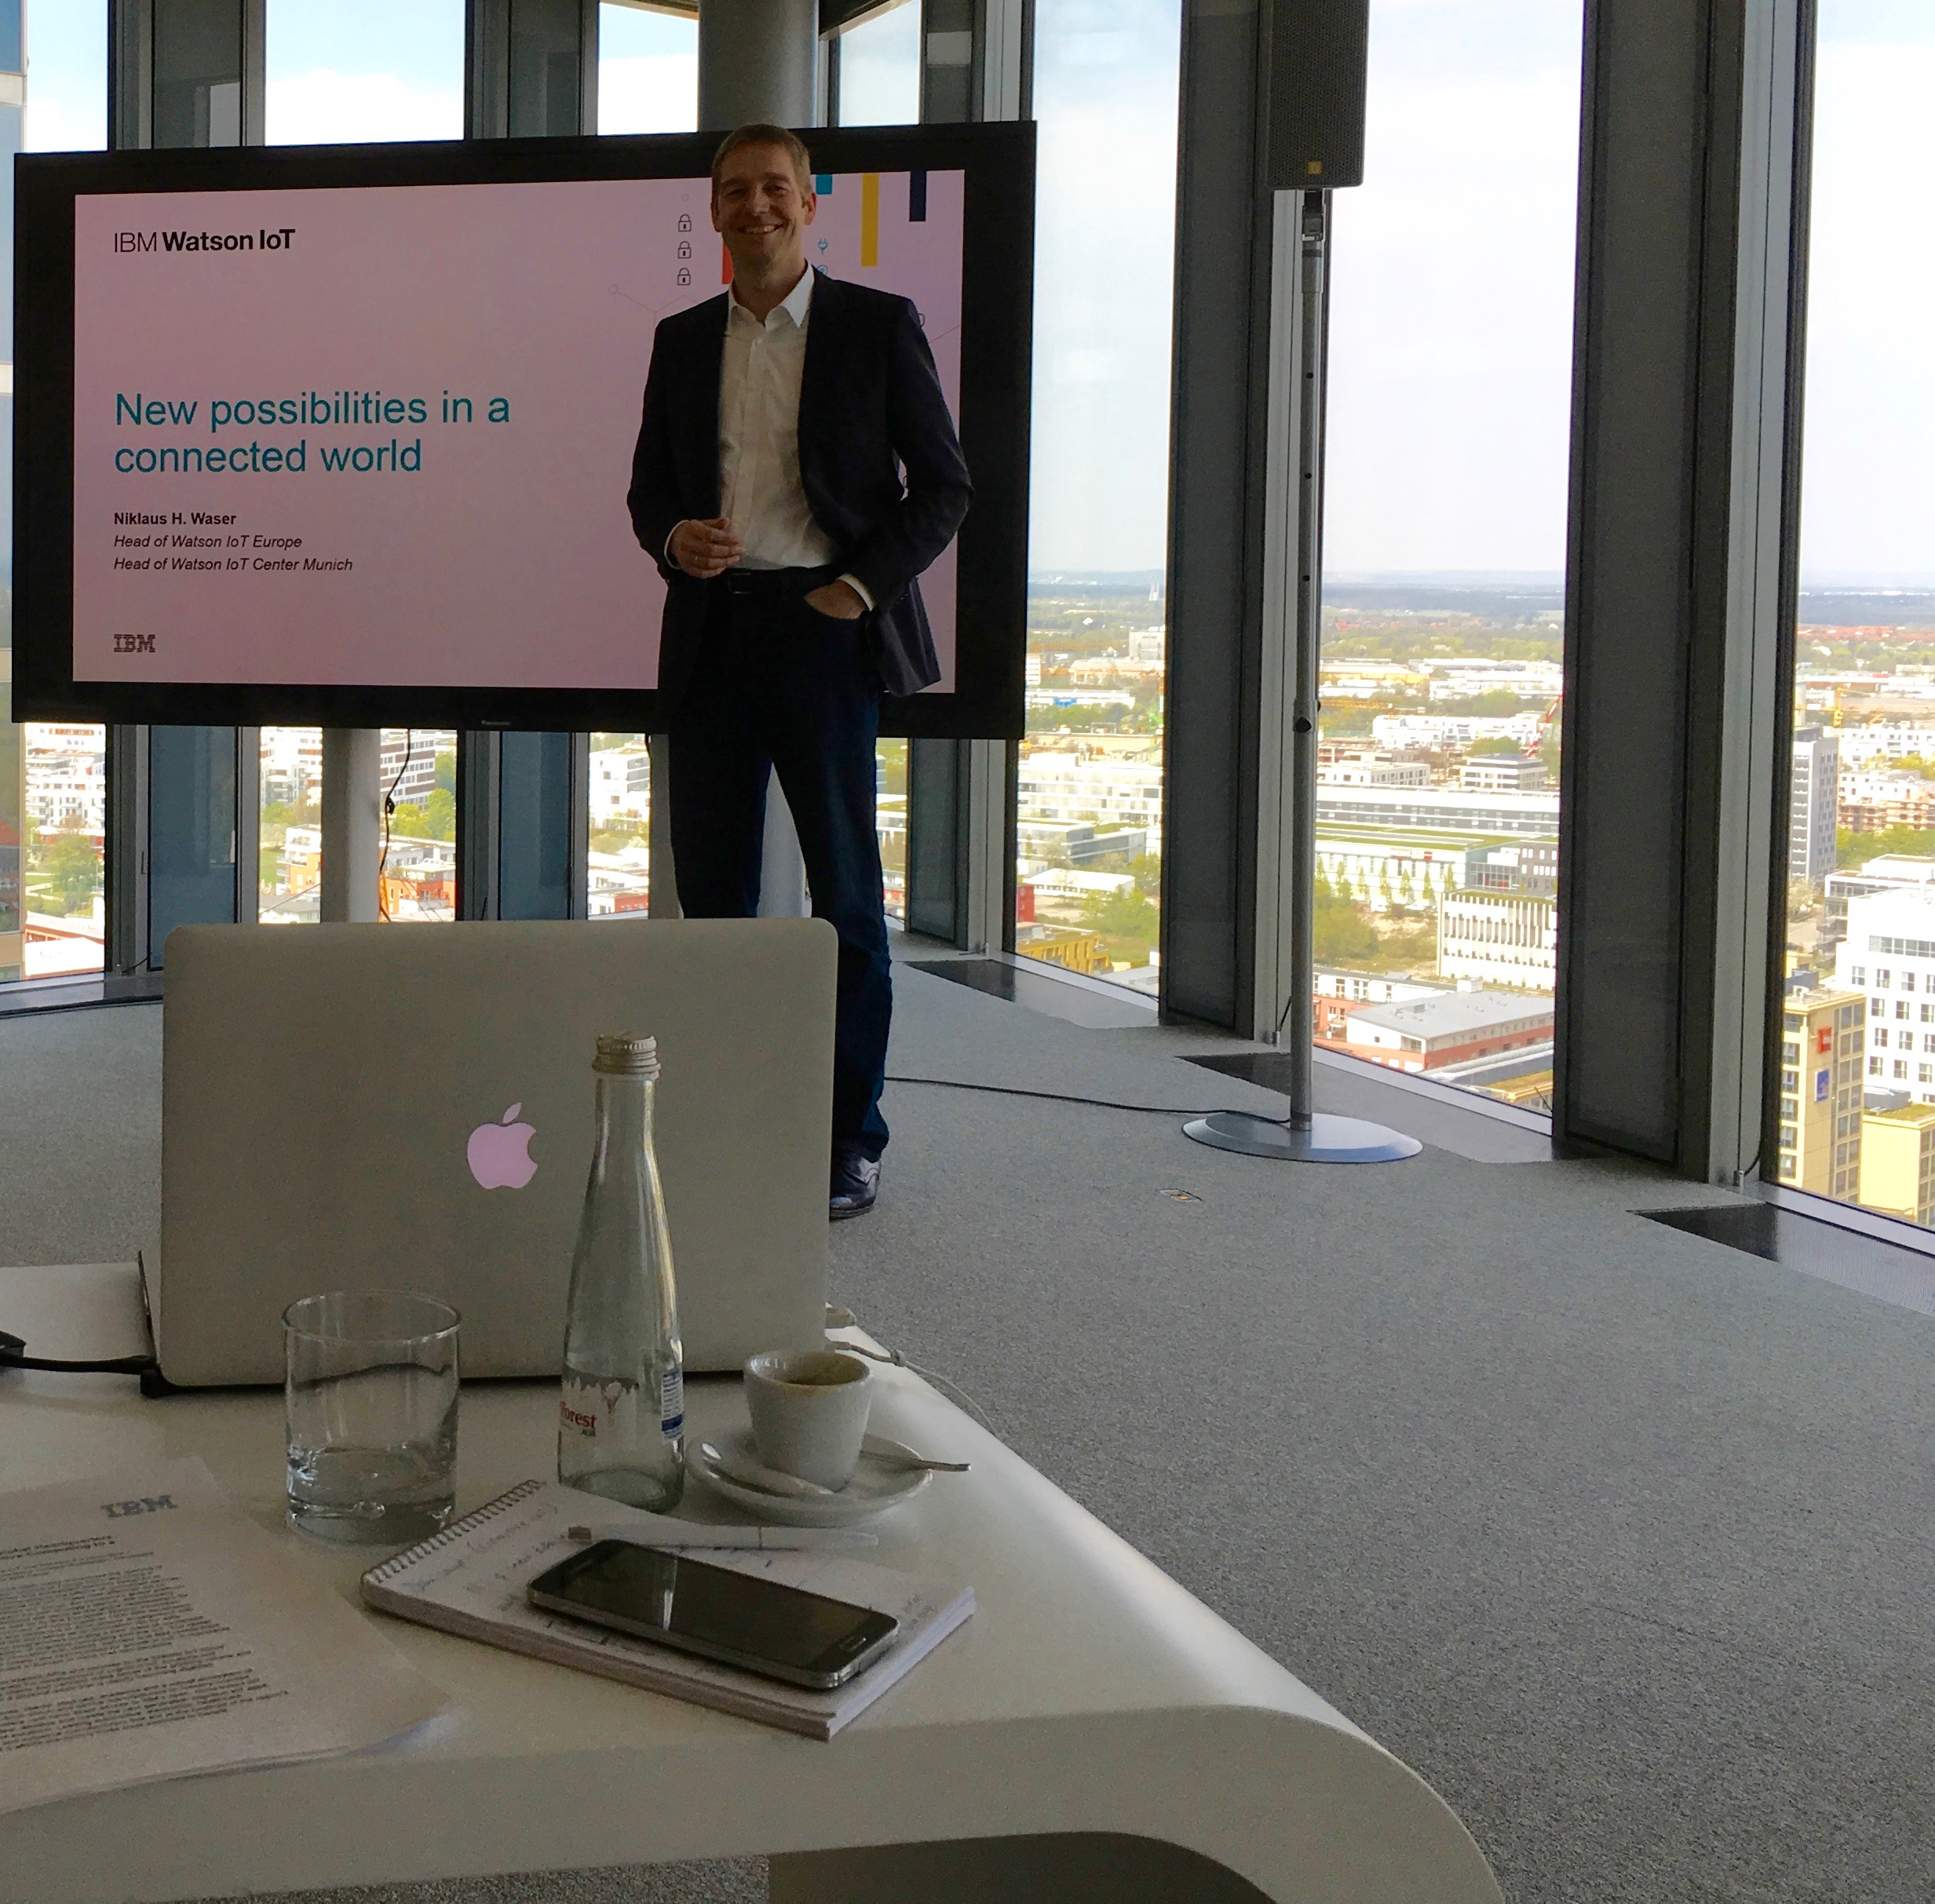 I know Apple and IBM are friends and partners today, but I still got a kick out of watching the the head of Watson IoT Europe using his Macbook for this presentation.